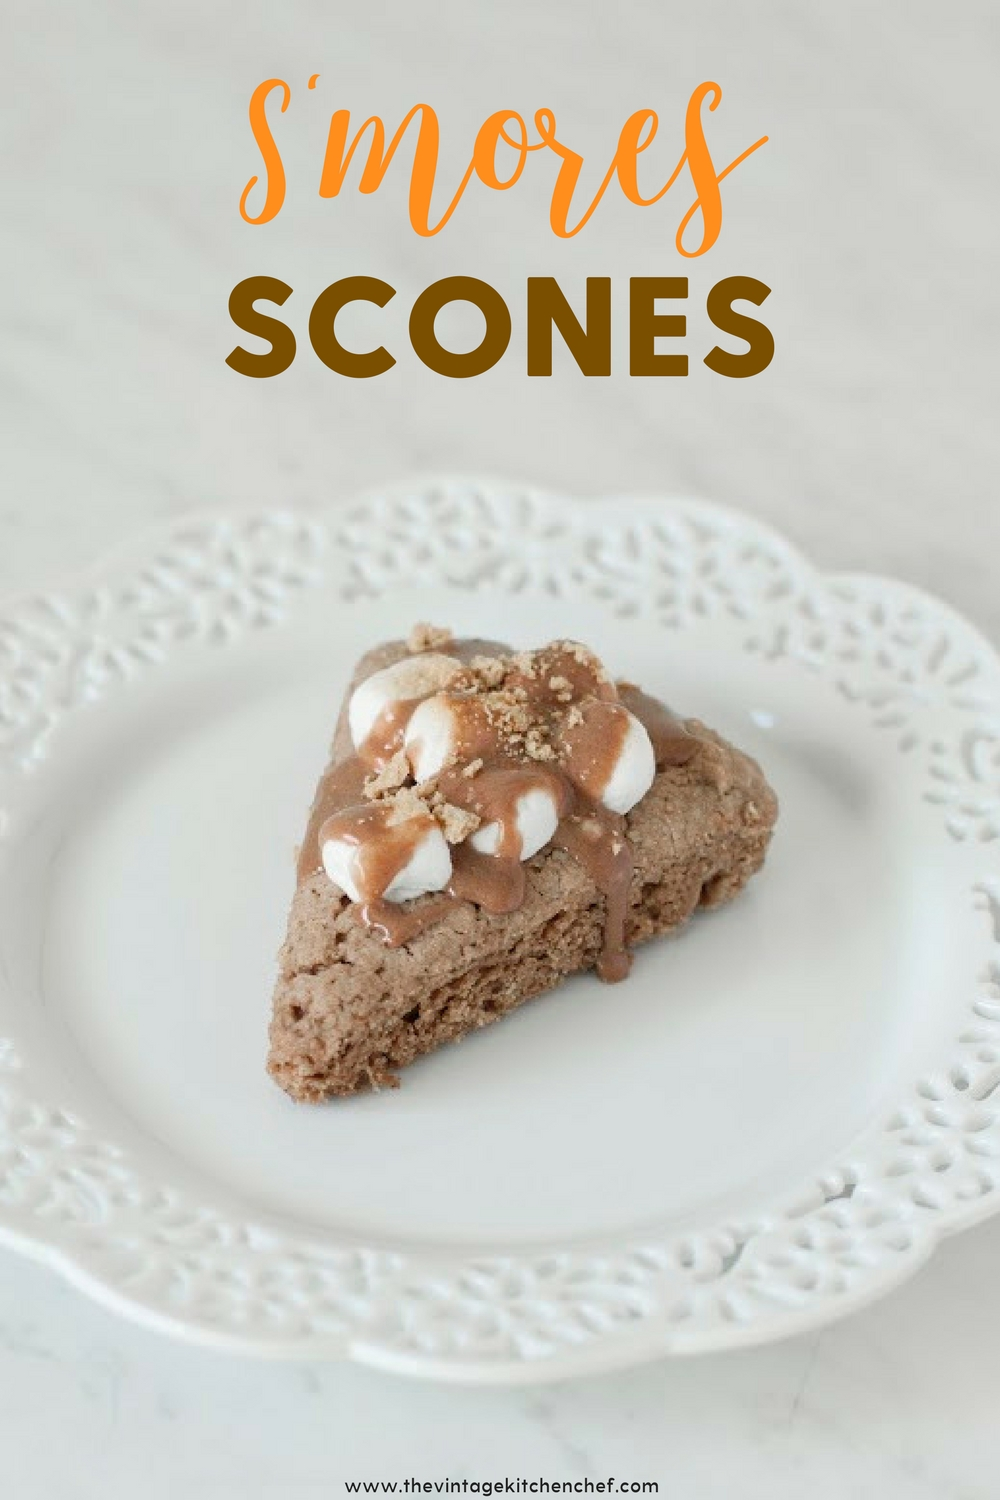 These are to die for and incredibly delicious with the yummy flavors of s'mores baked into light, fluffy scones! One just may not be enough!